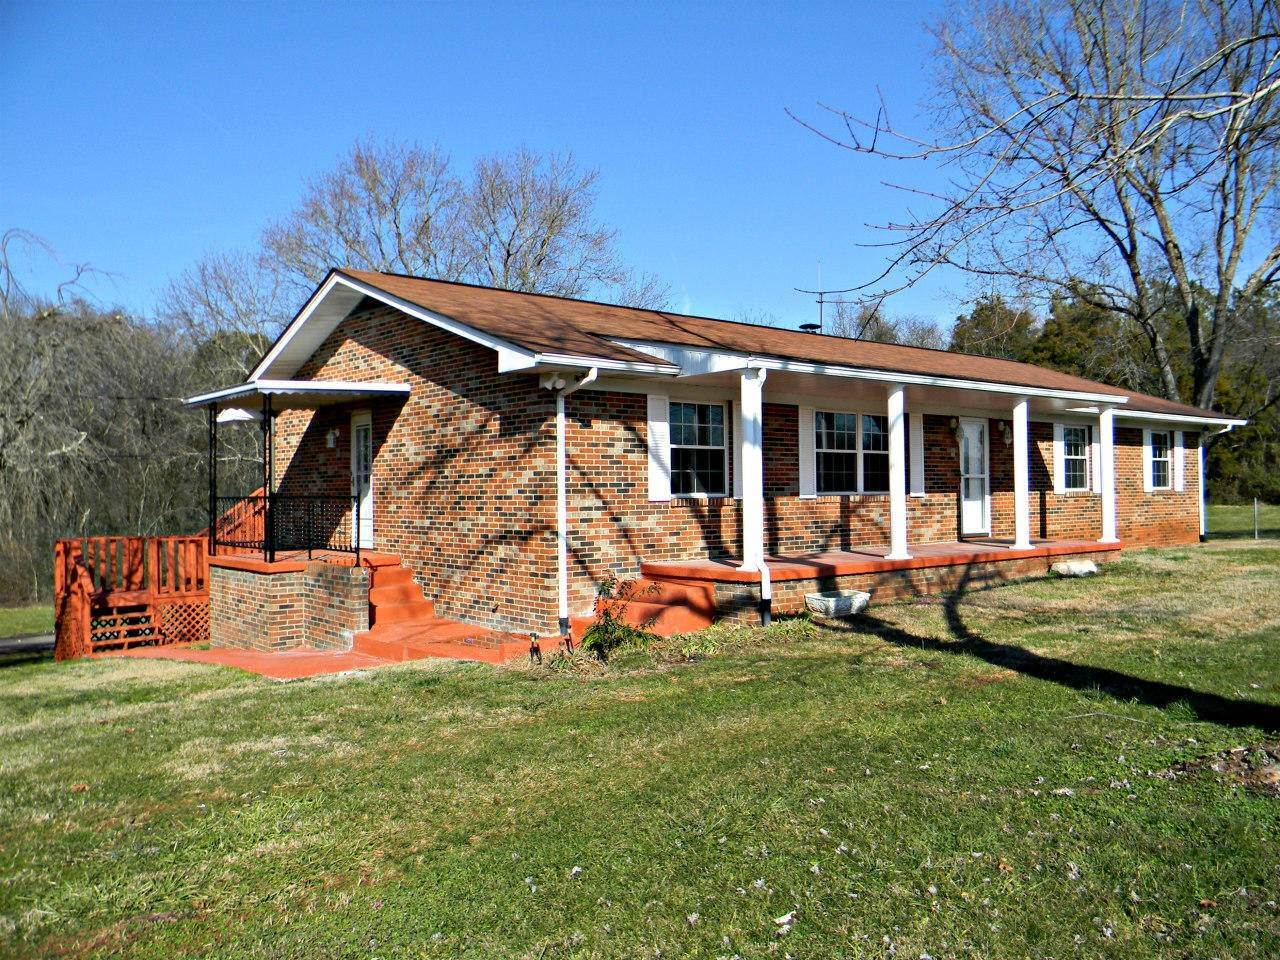 Single Family Homes for Sale at 2282 Hwy 11E Strawberry Plains, Tennessee 37871 United States